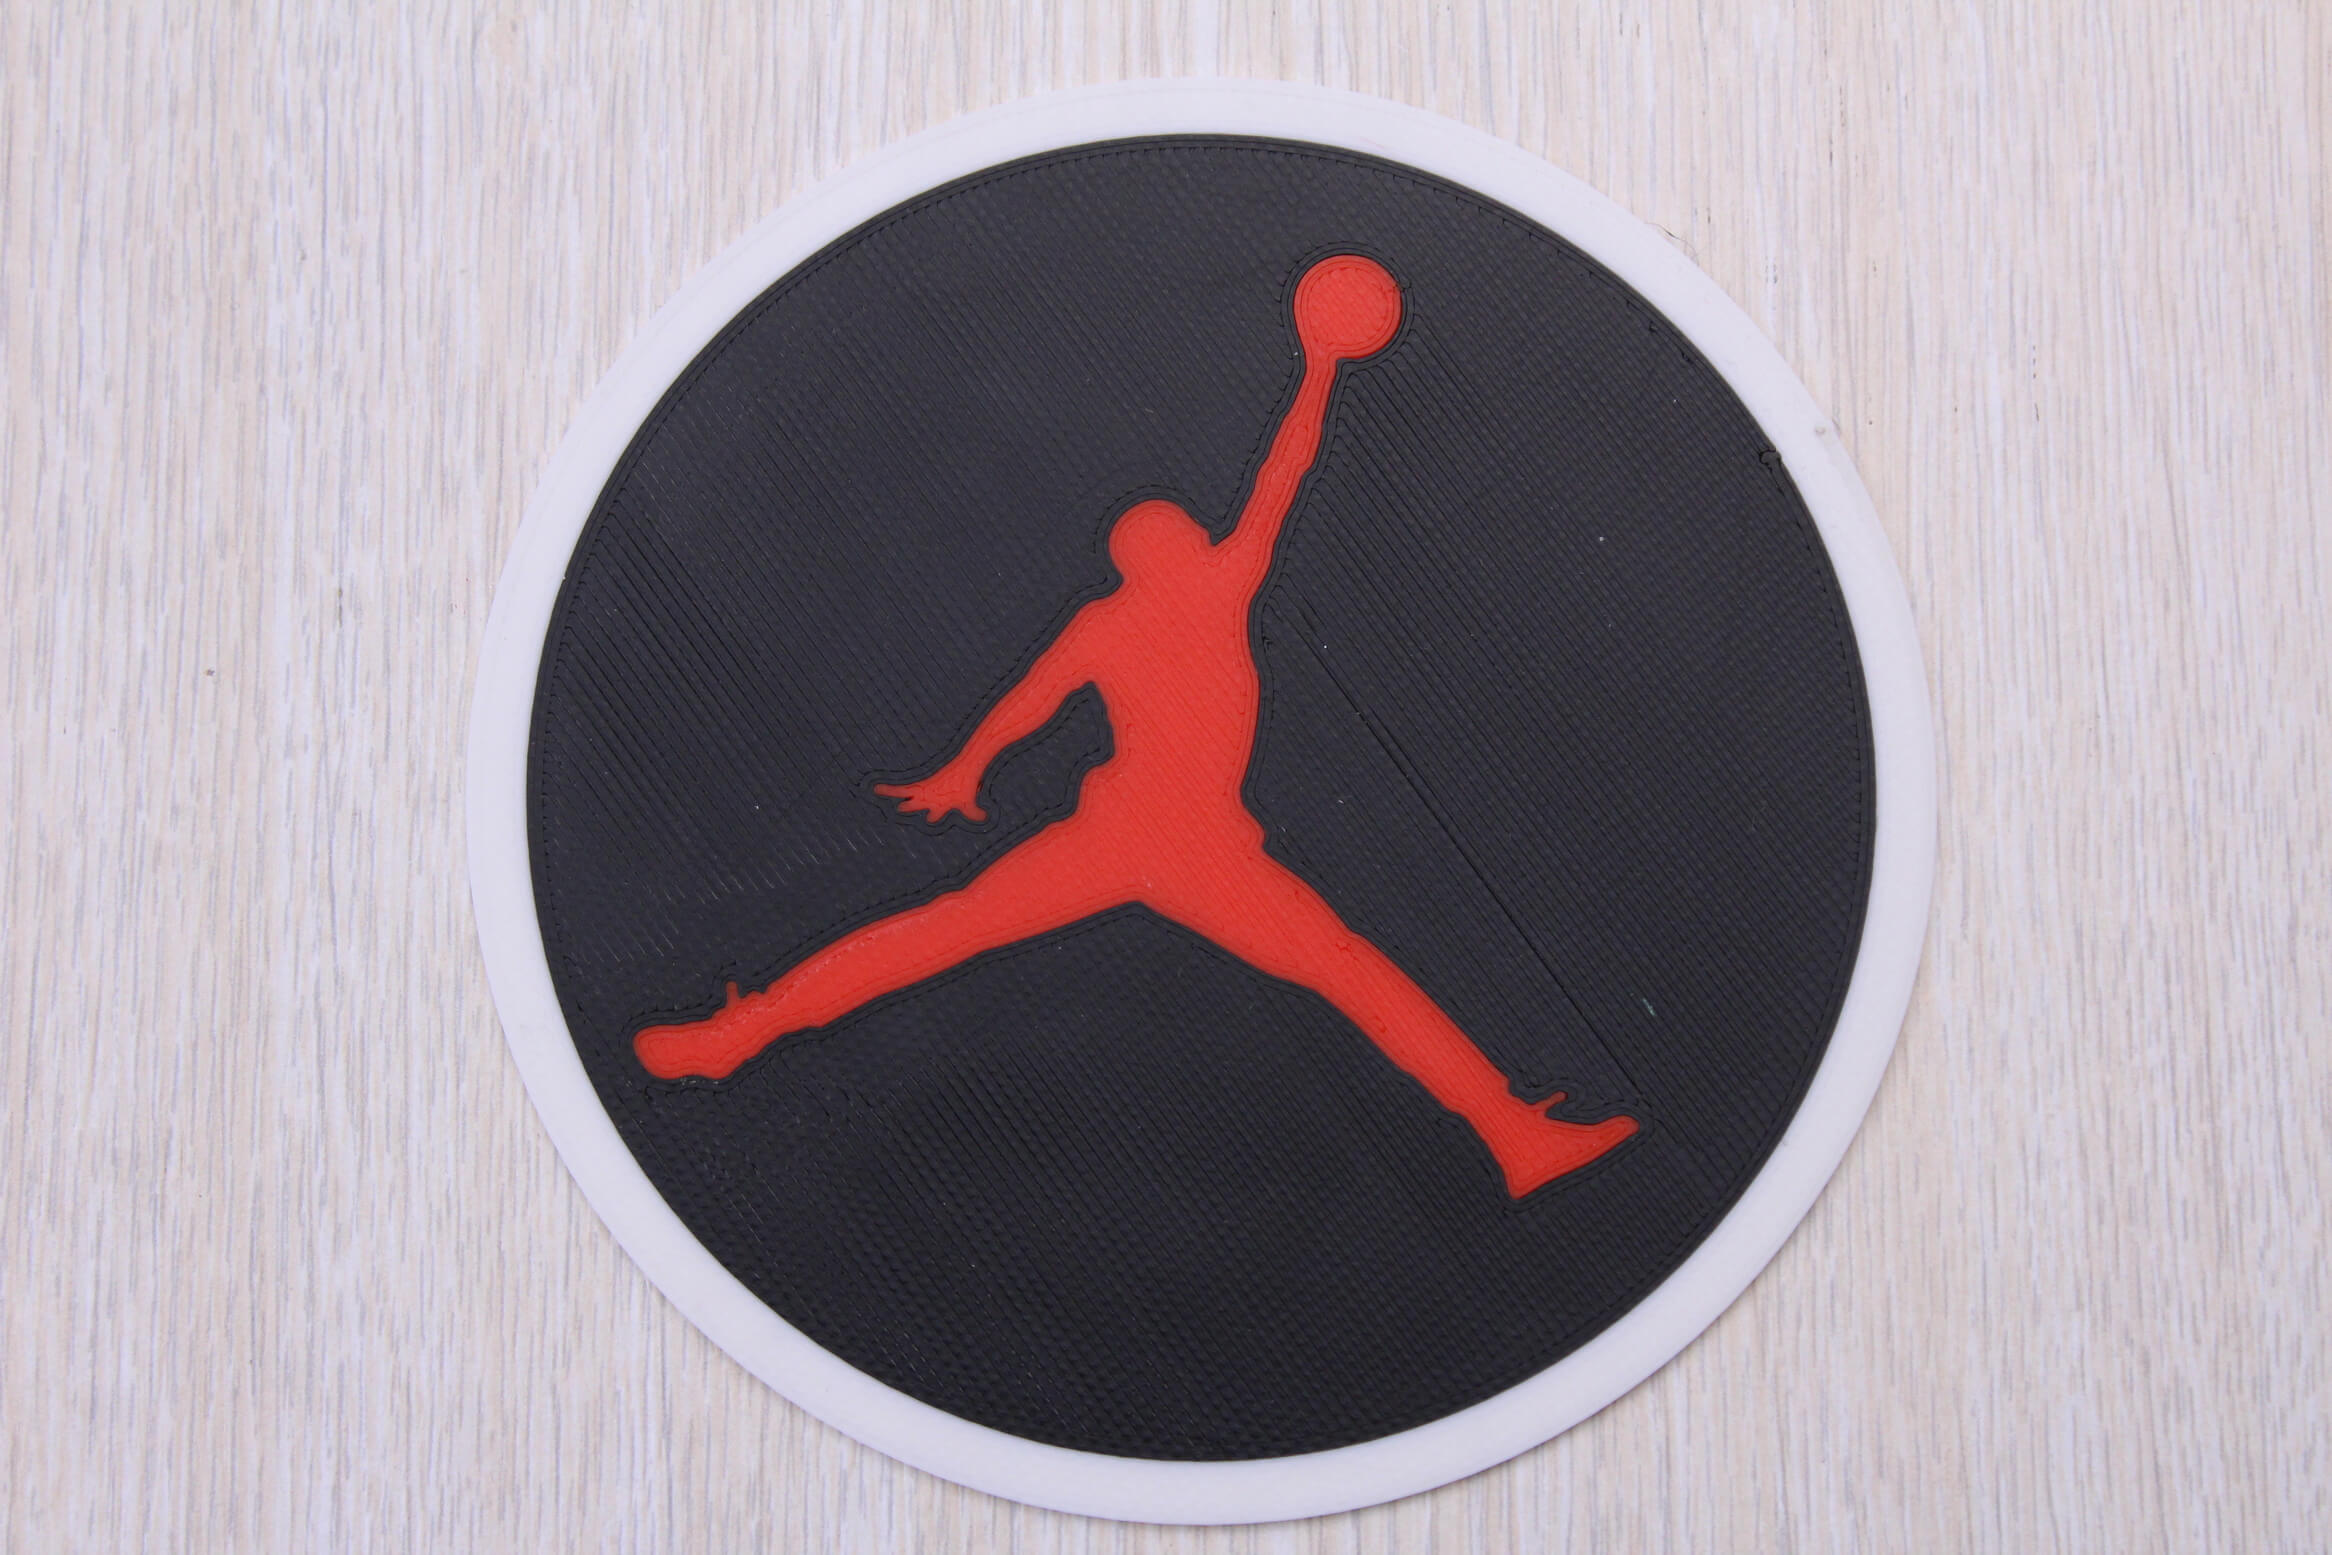 Jordan sign Multi Color 3D Print 1 | Multi-Color 3D Printing Using IdeaMaker